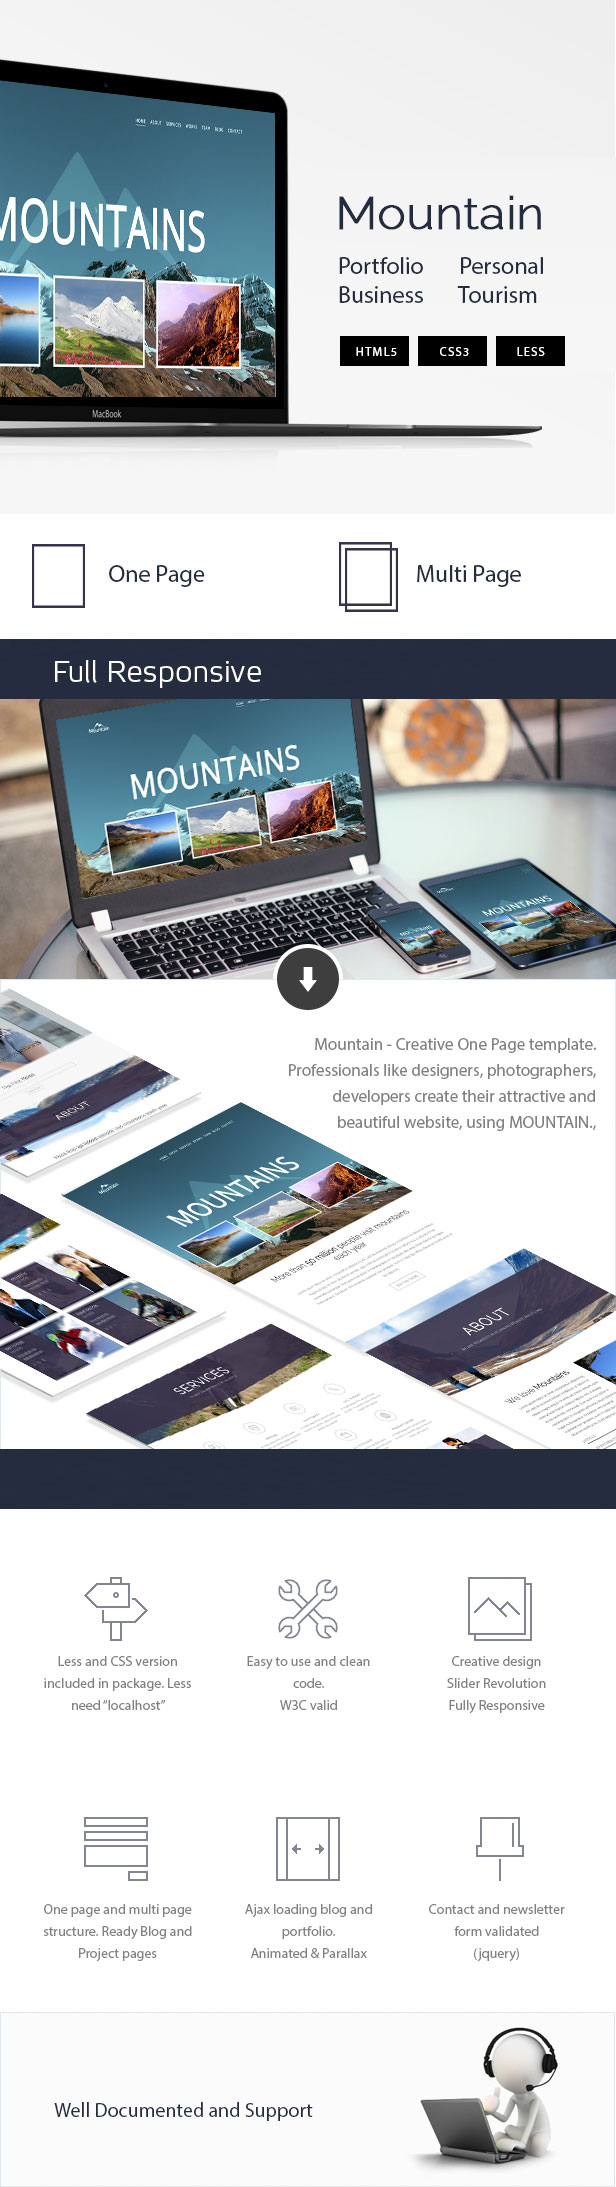 Mountain - Creative OnePage & MultiPage Template - 1